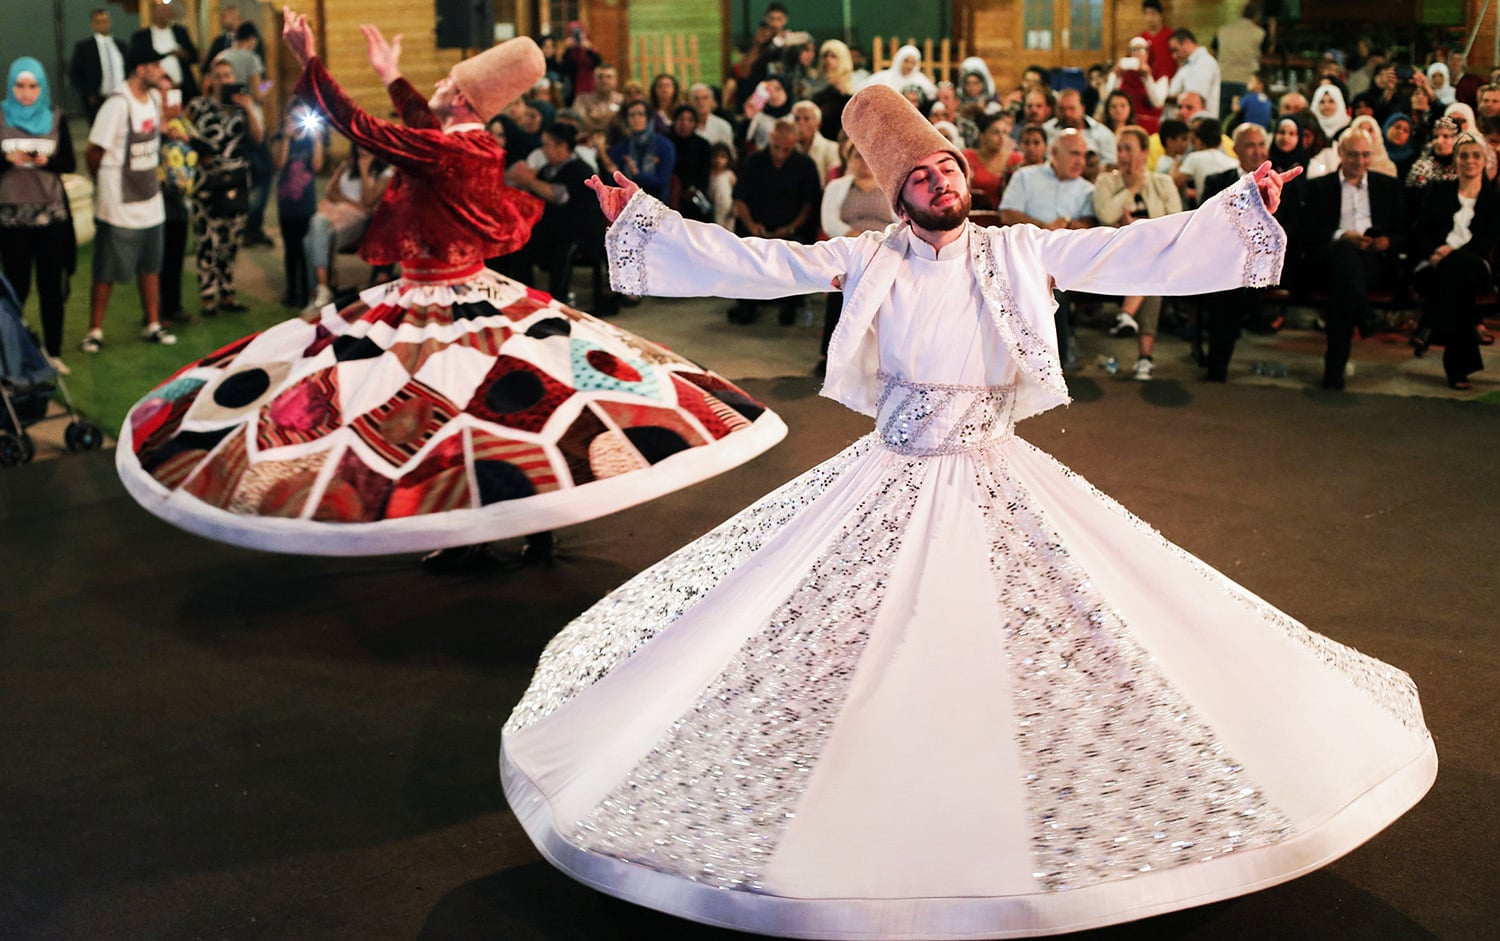 Lebanese whirling dervishes perform in a celebration during Ramazan in the capital Beirut's Verdun street on June 9.— AFP